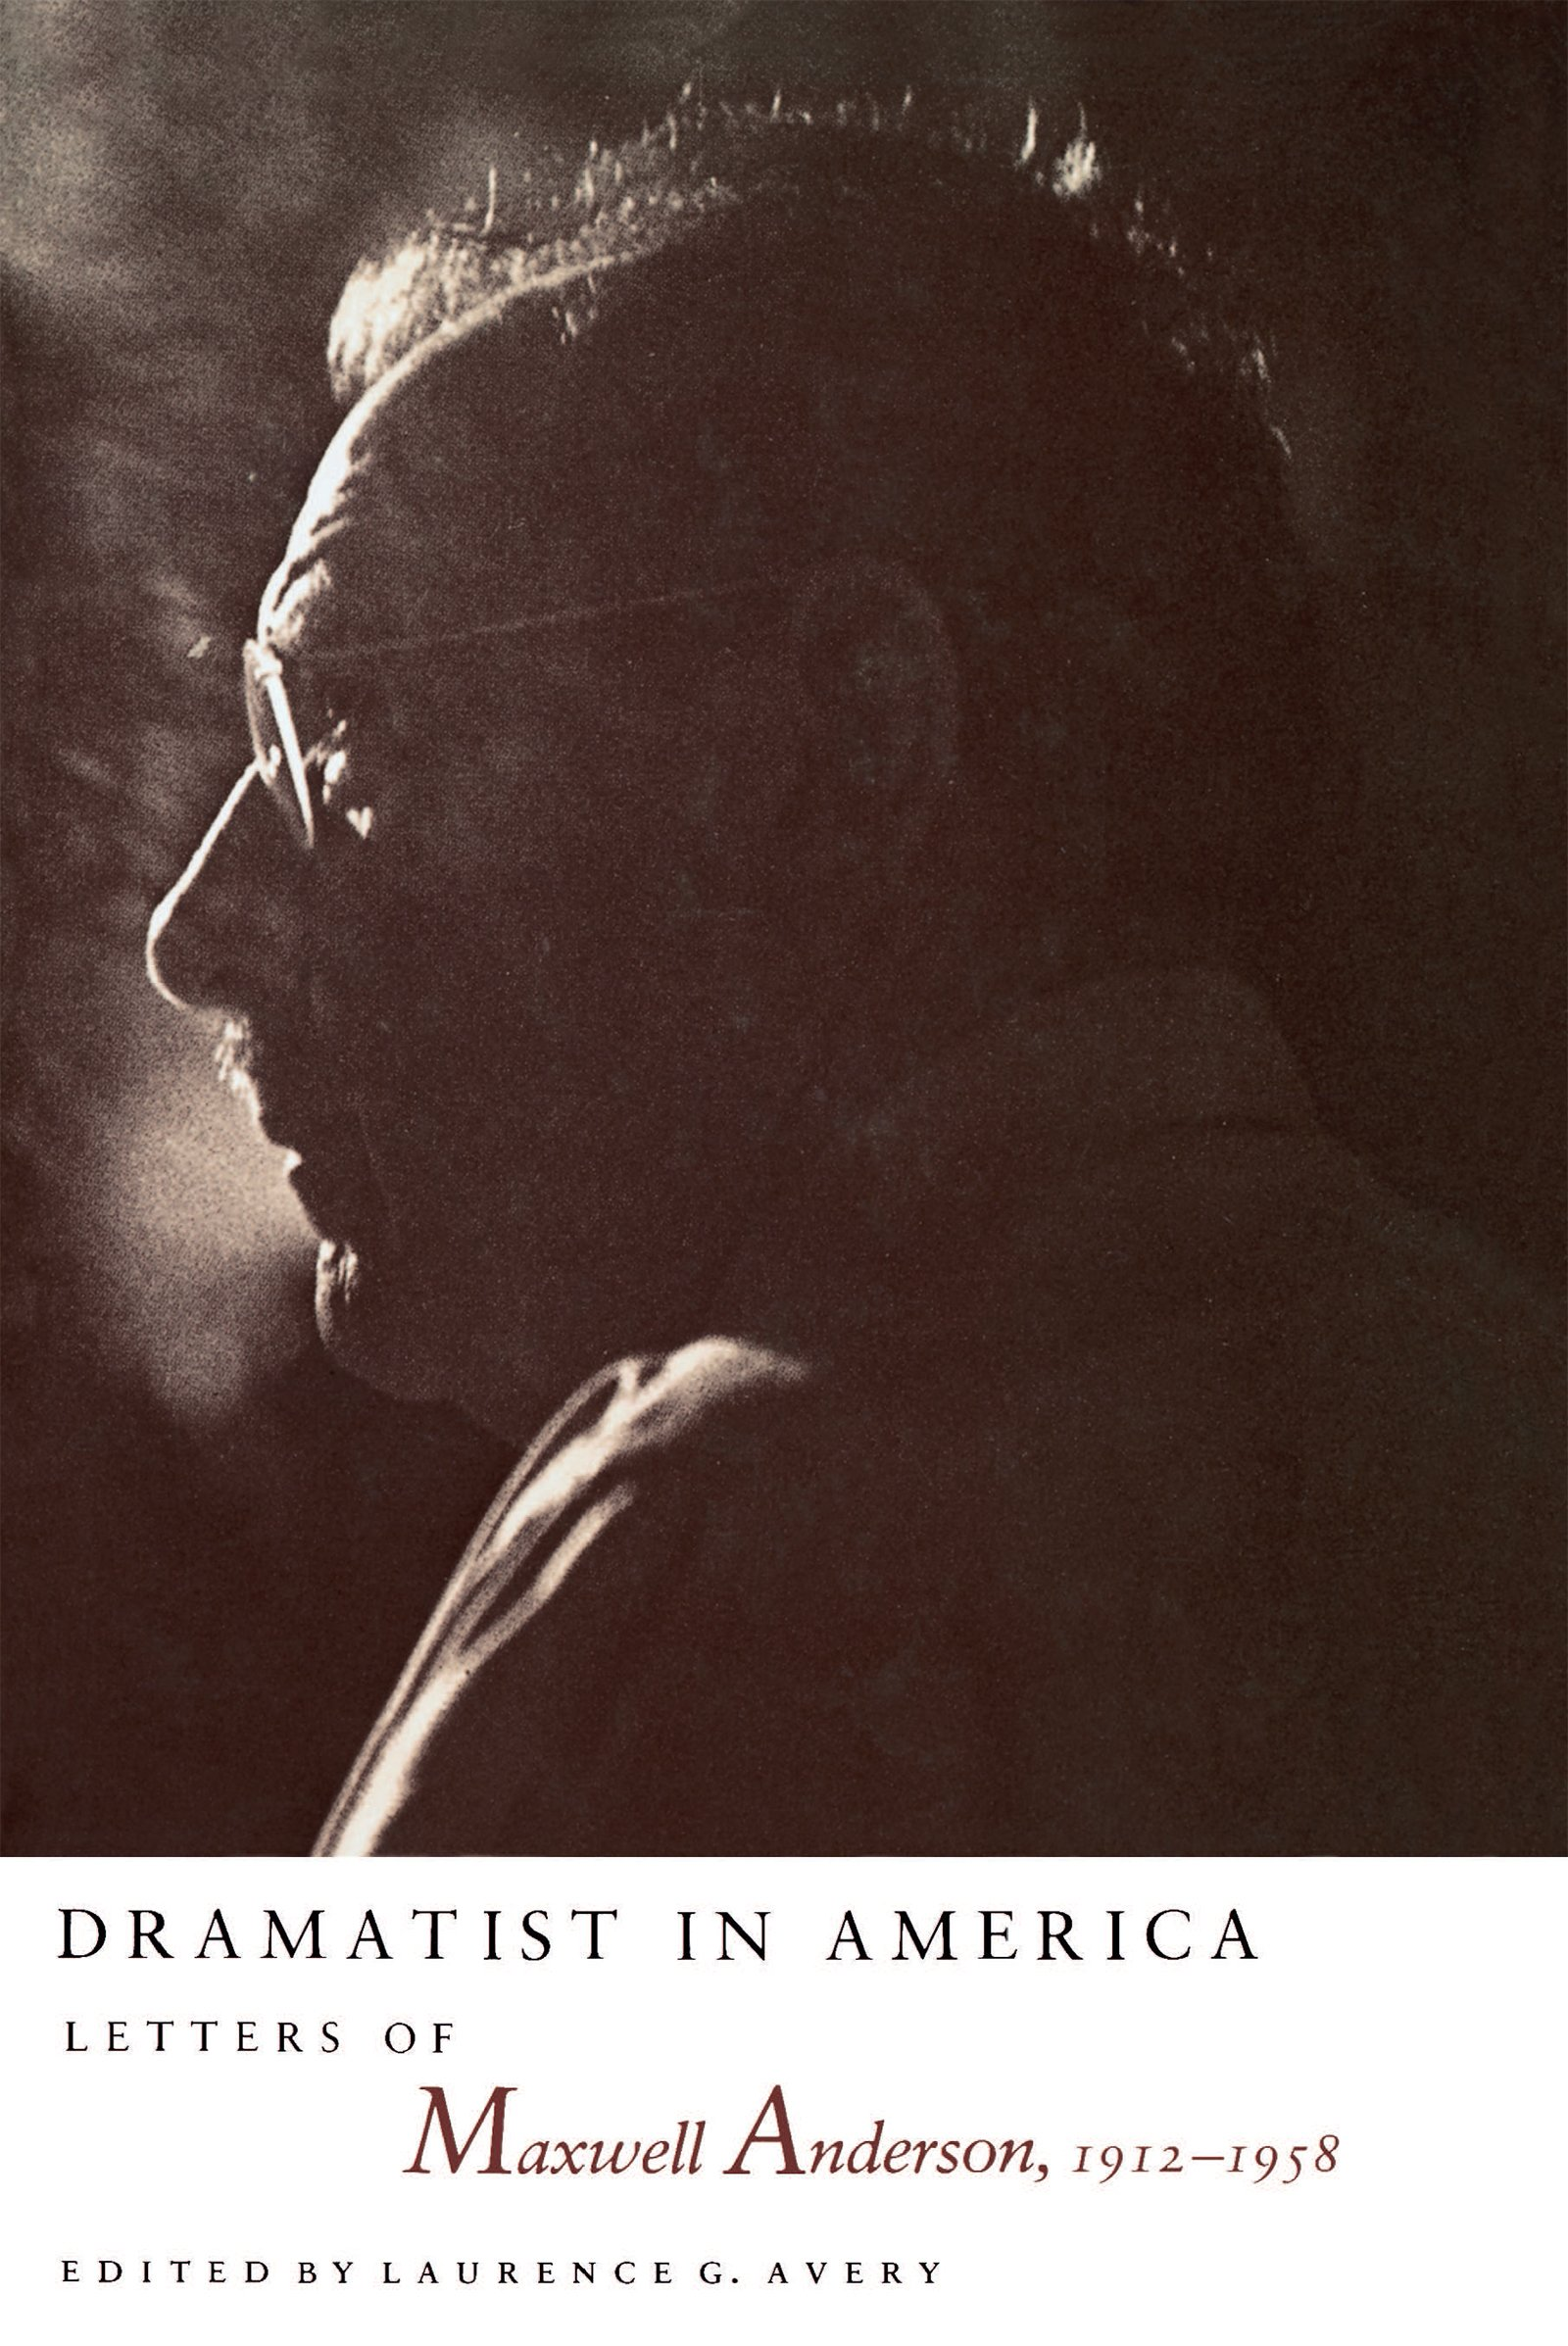 dramatist-in-america-letters-of-maxwell-anderson-1912-1958